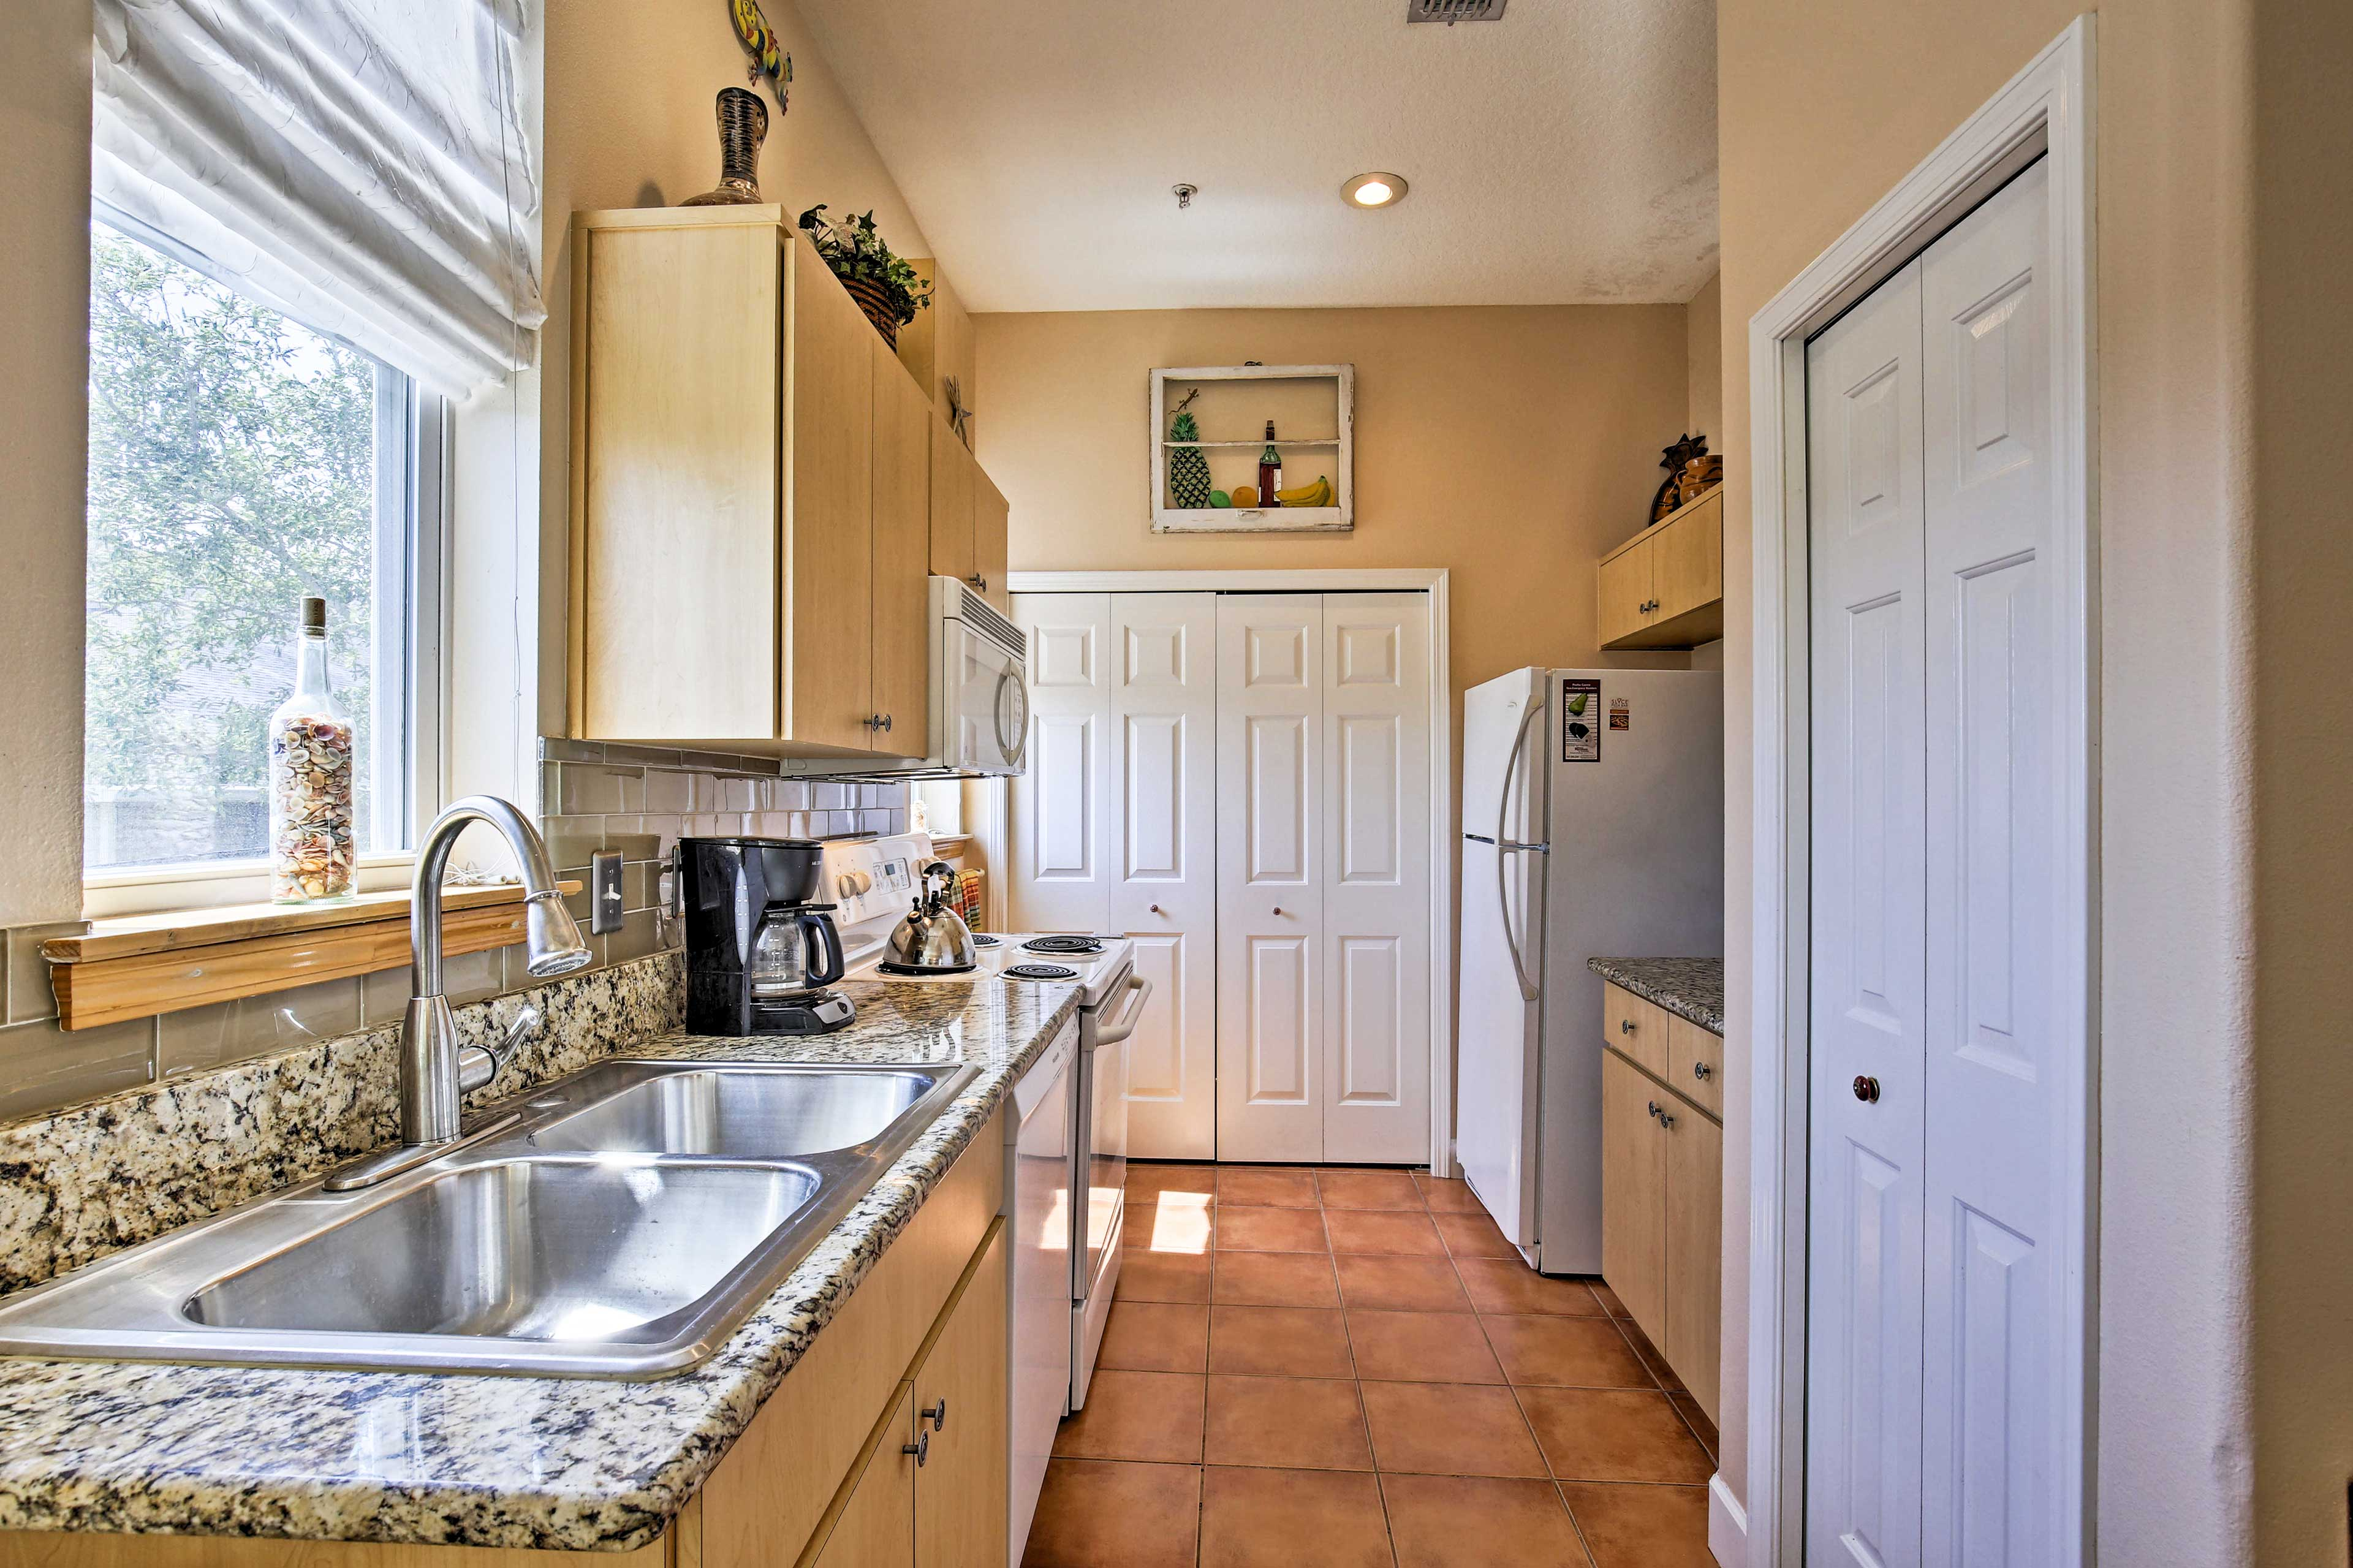 Whip up your signature dish in the fully equipped kitchen.